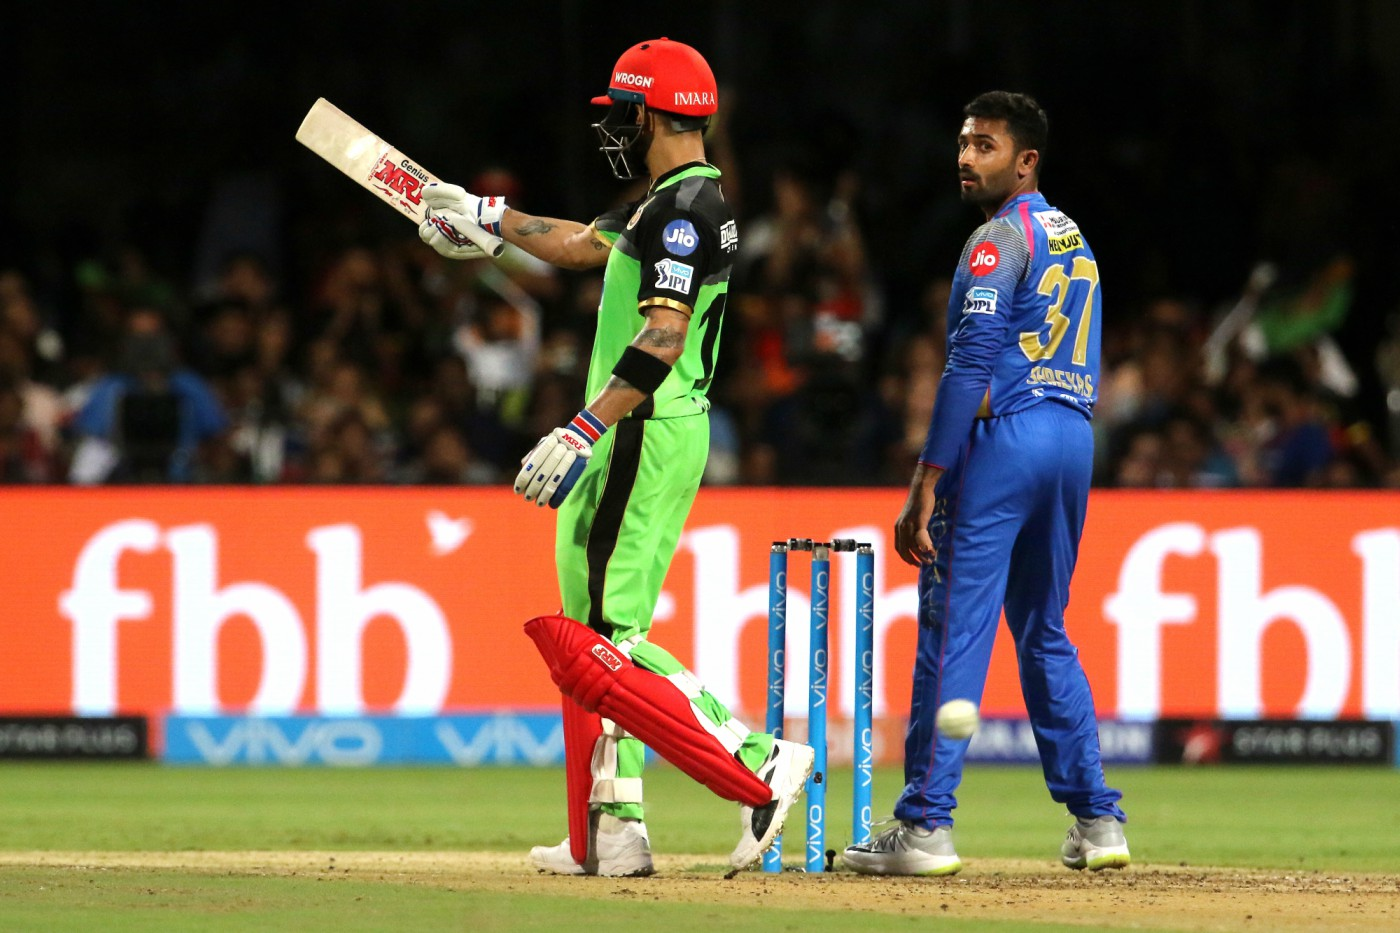 IPL 2018: We Were Surprised By How The Pitch Played: Virat Kohli 2